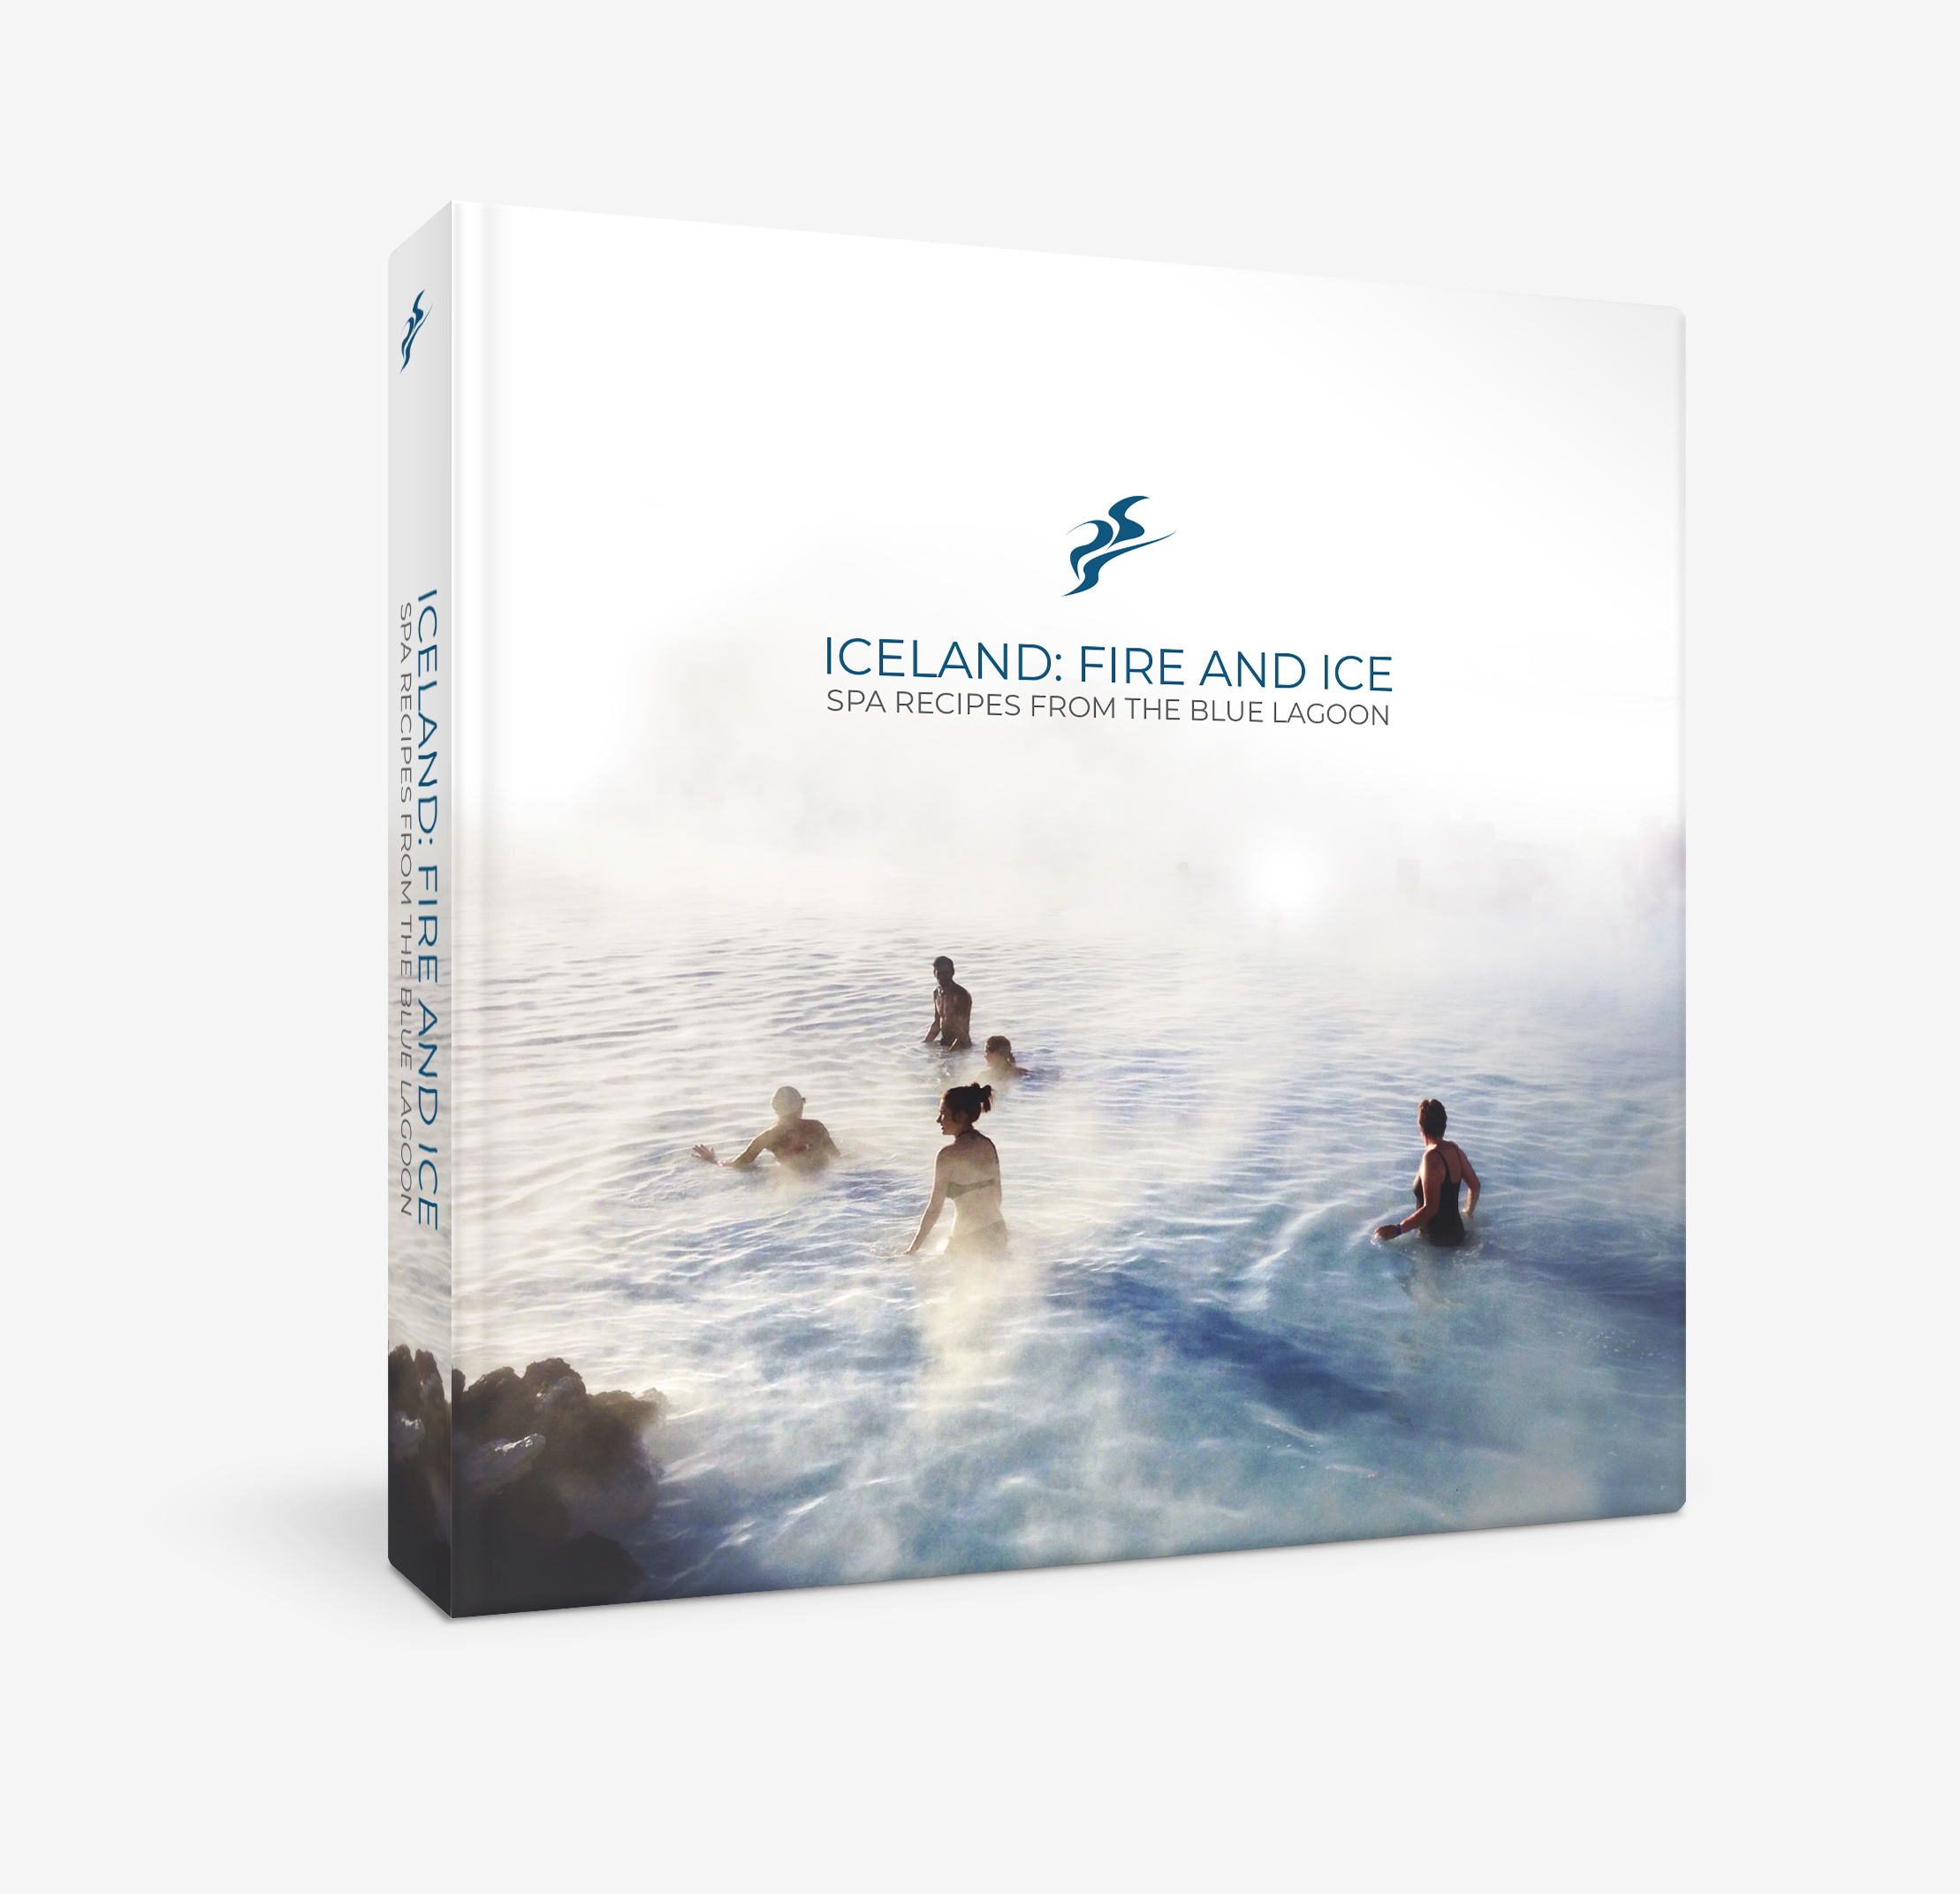 iceland book cover mock.jpg